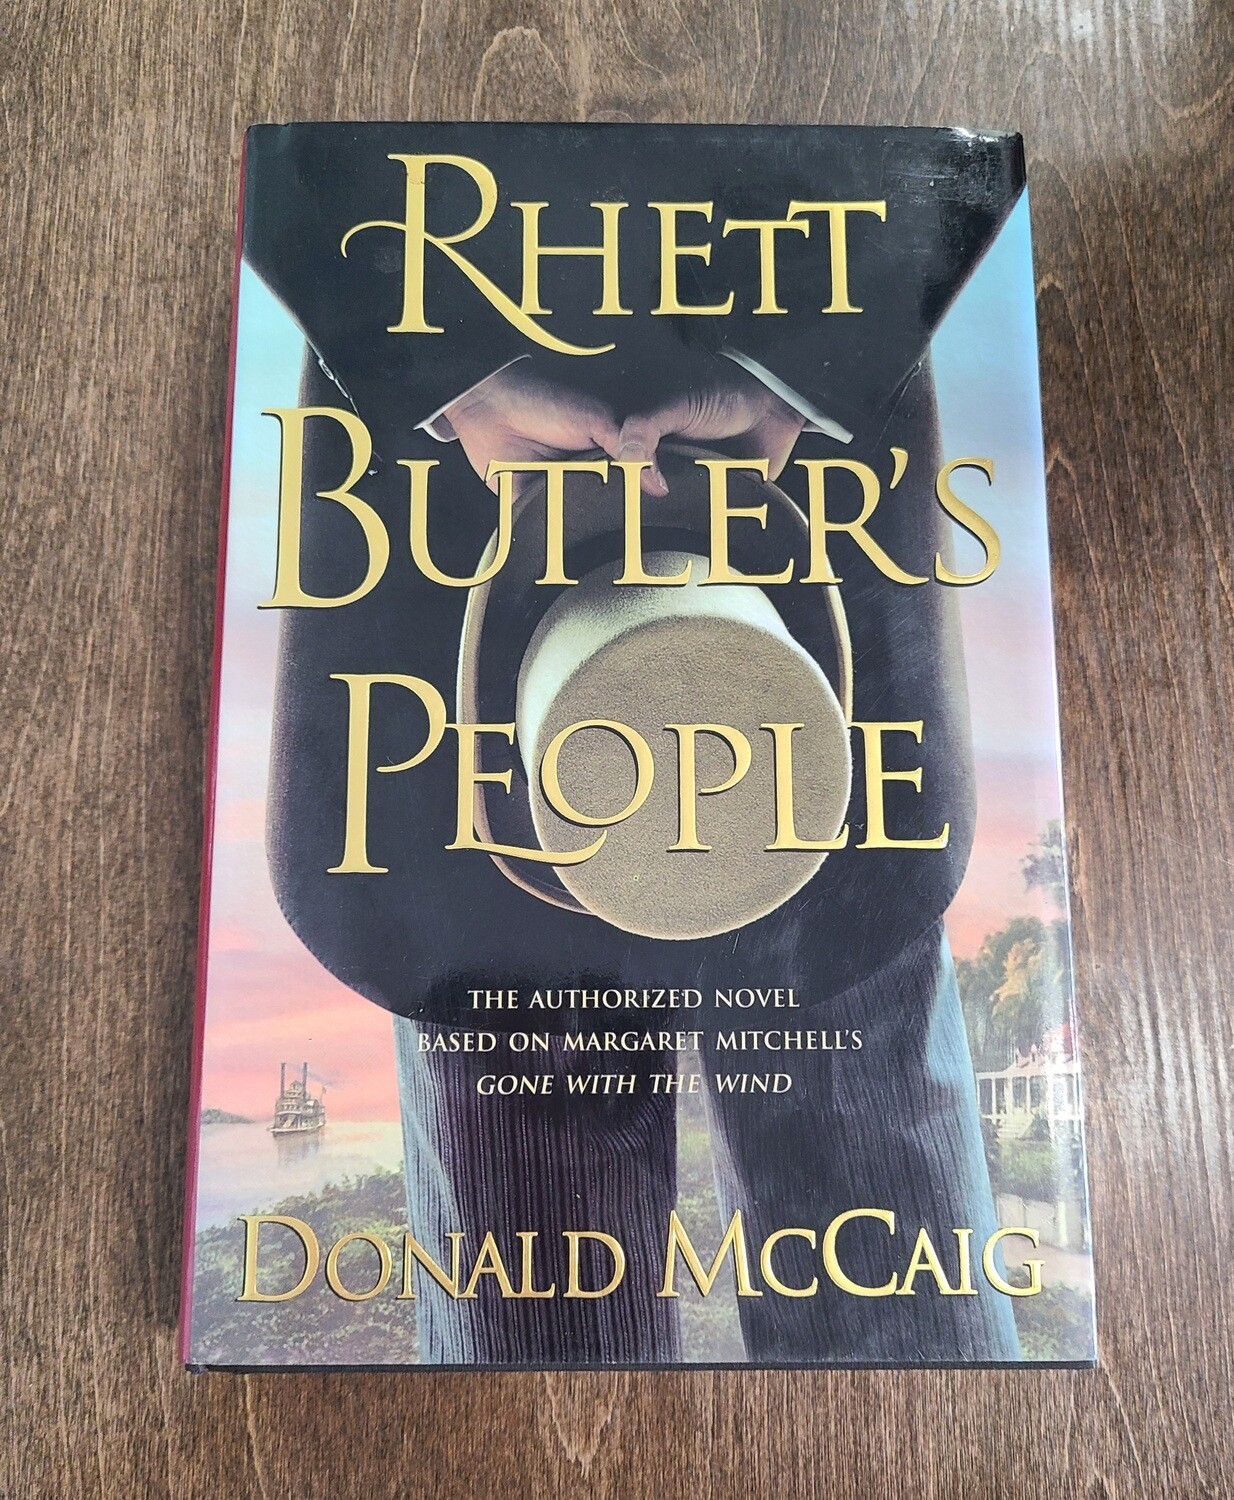 Rhett Butler's People by Donald McCaig